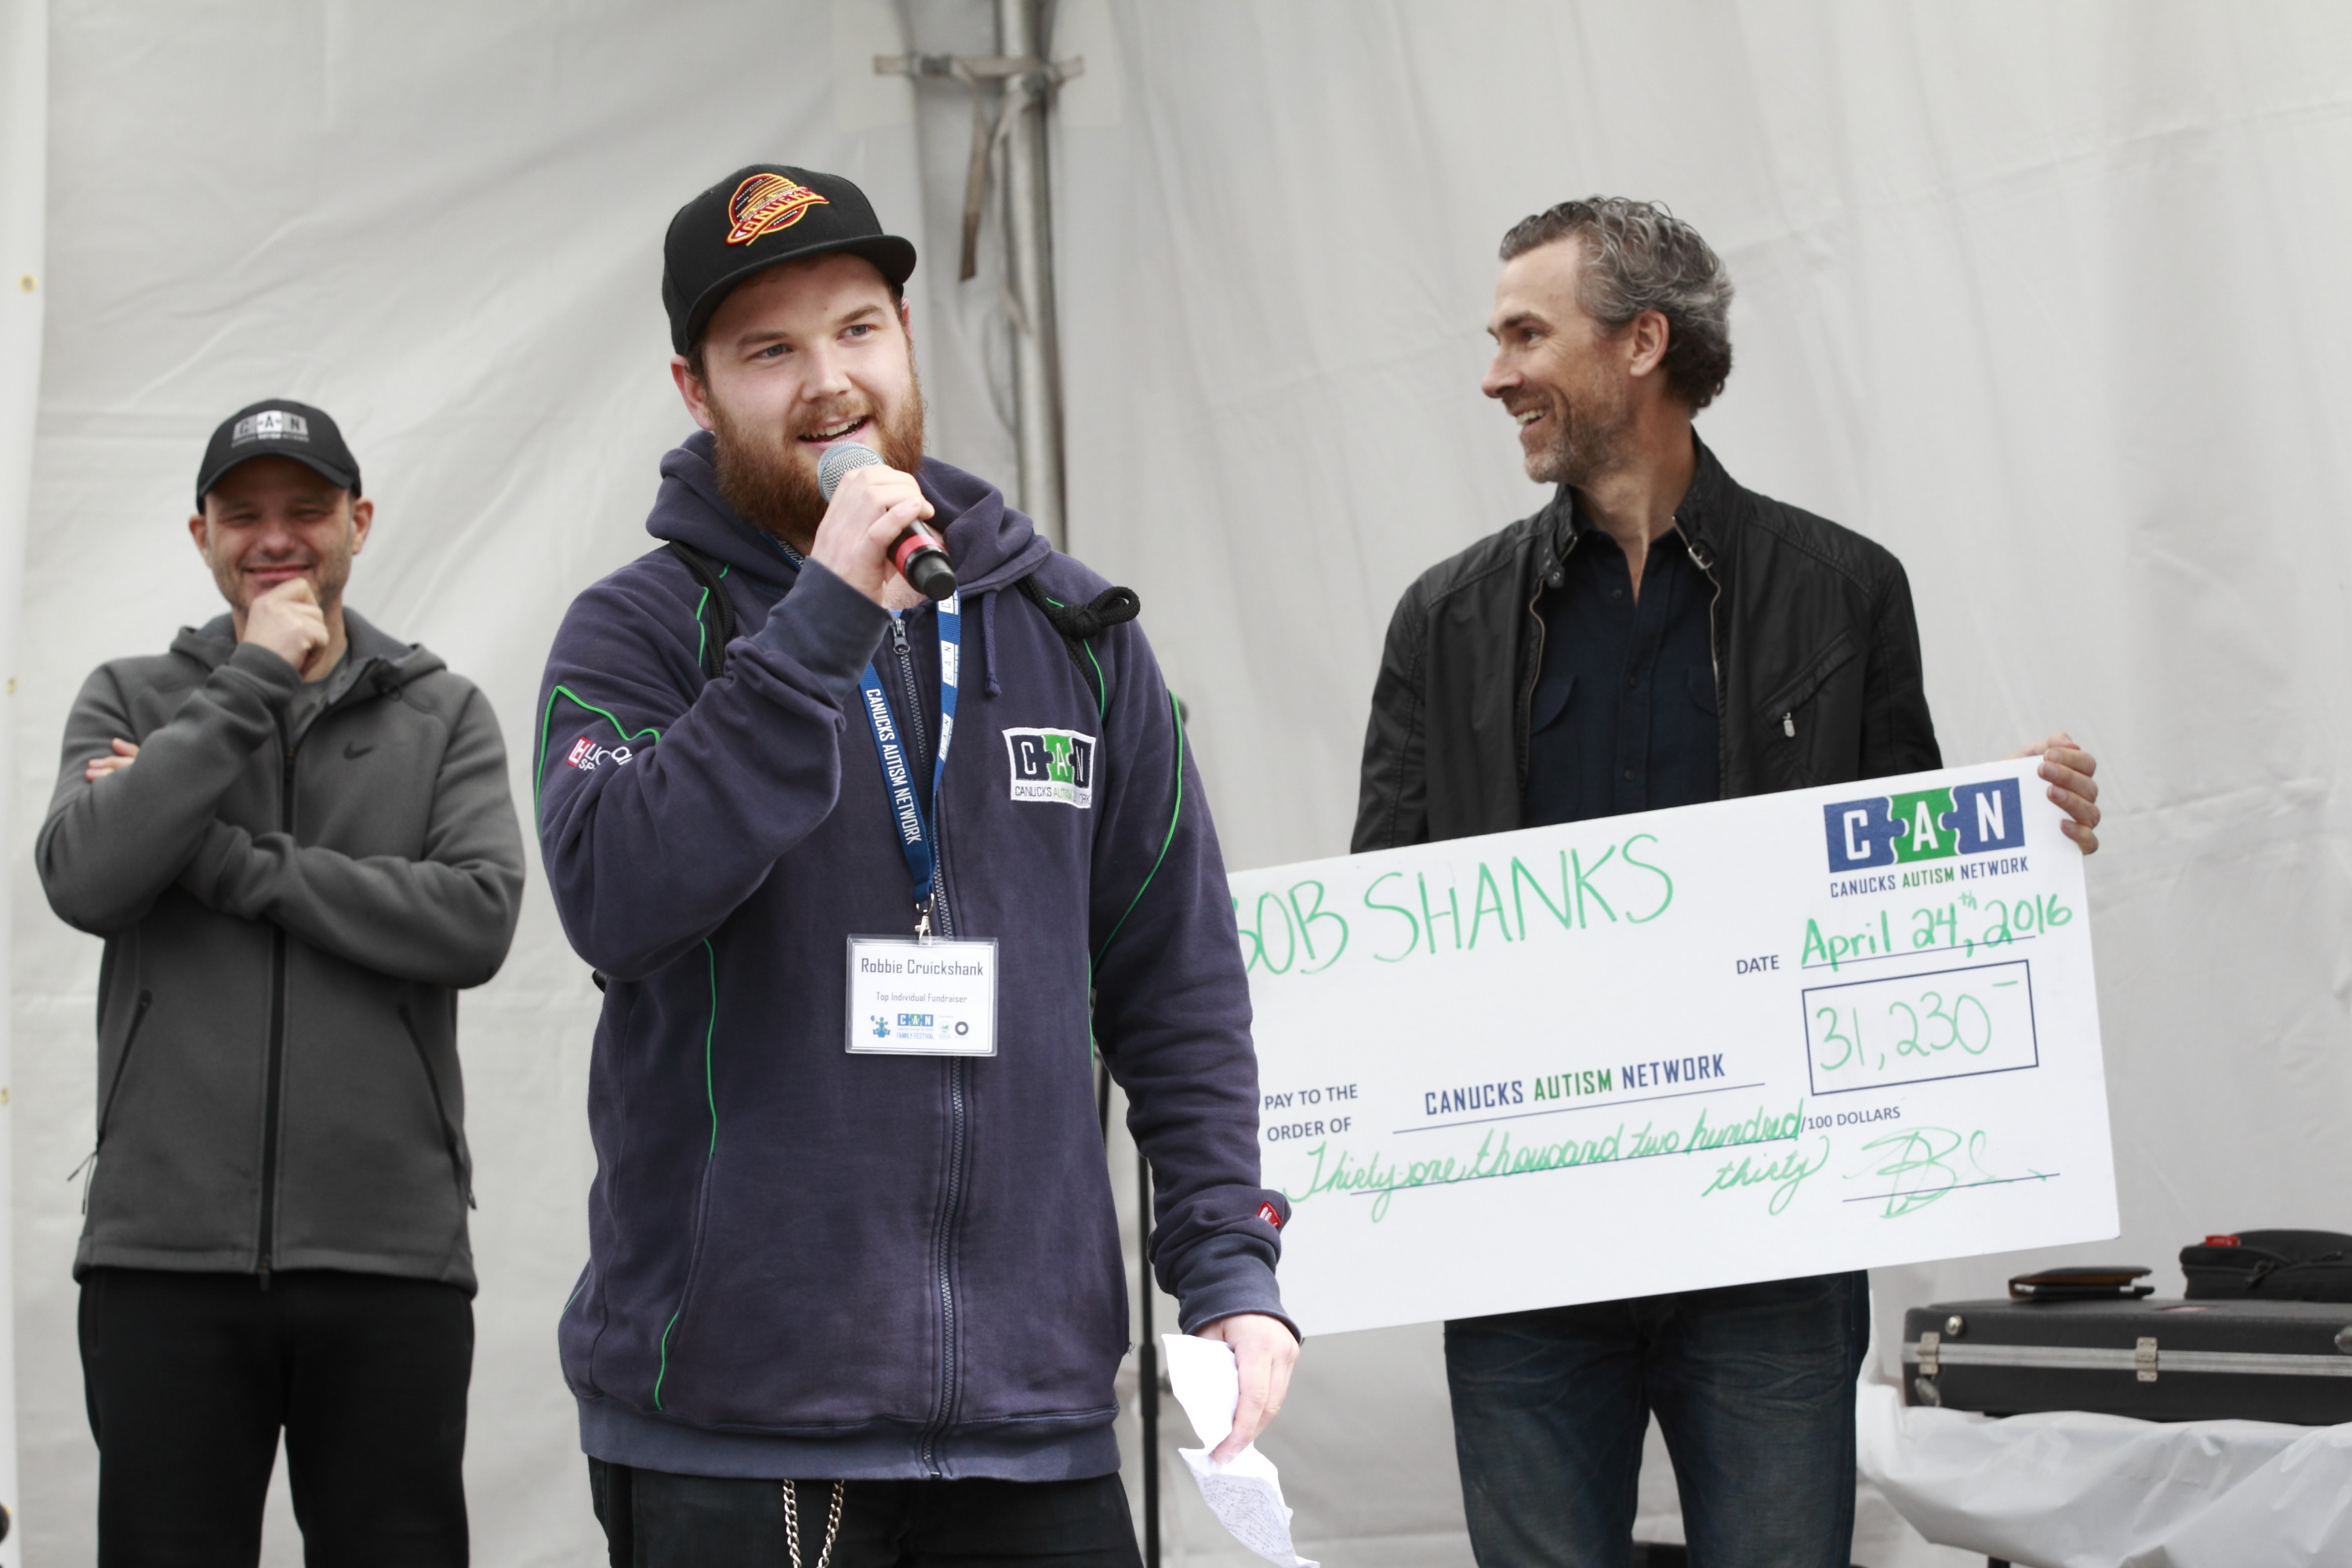 A young man speaks with a microphone with two men standing behind him holding a giant cheque.